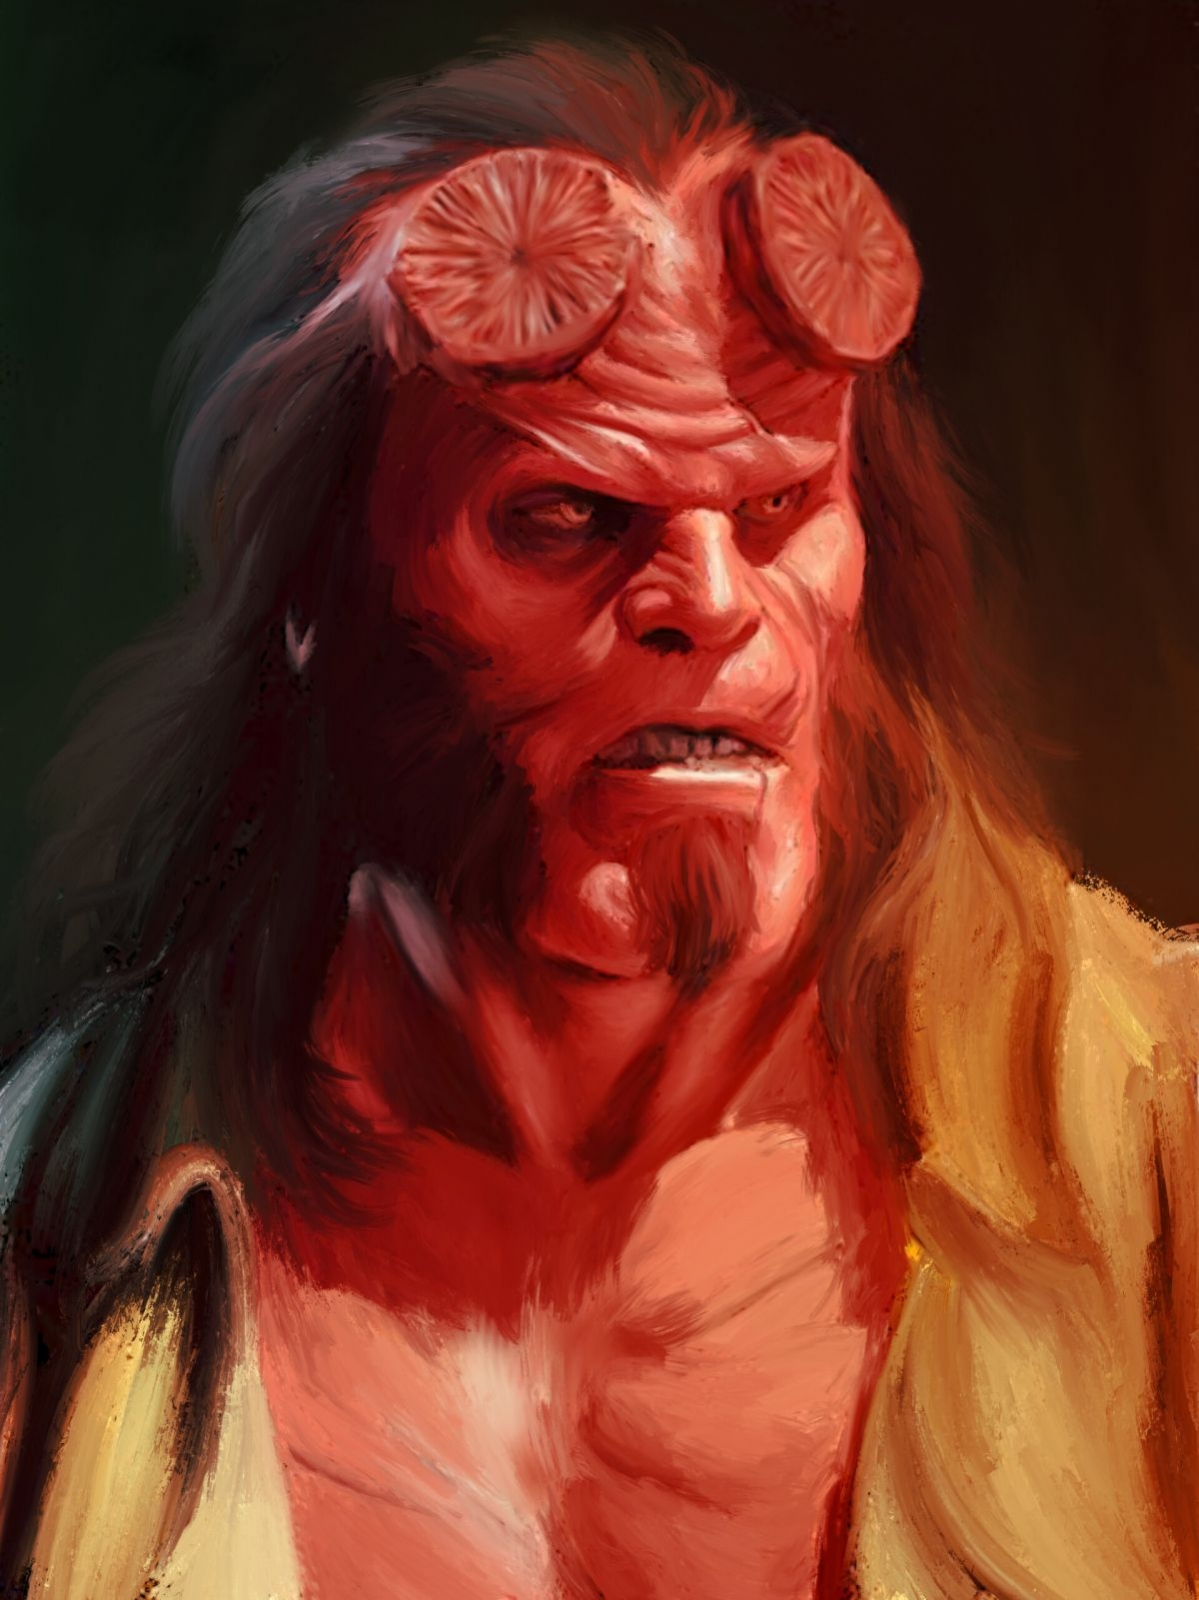 digital painting celebrity portrait hellboy by abhishek samal